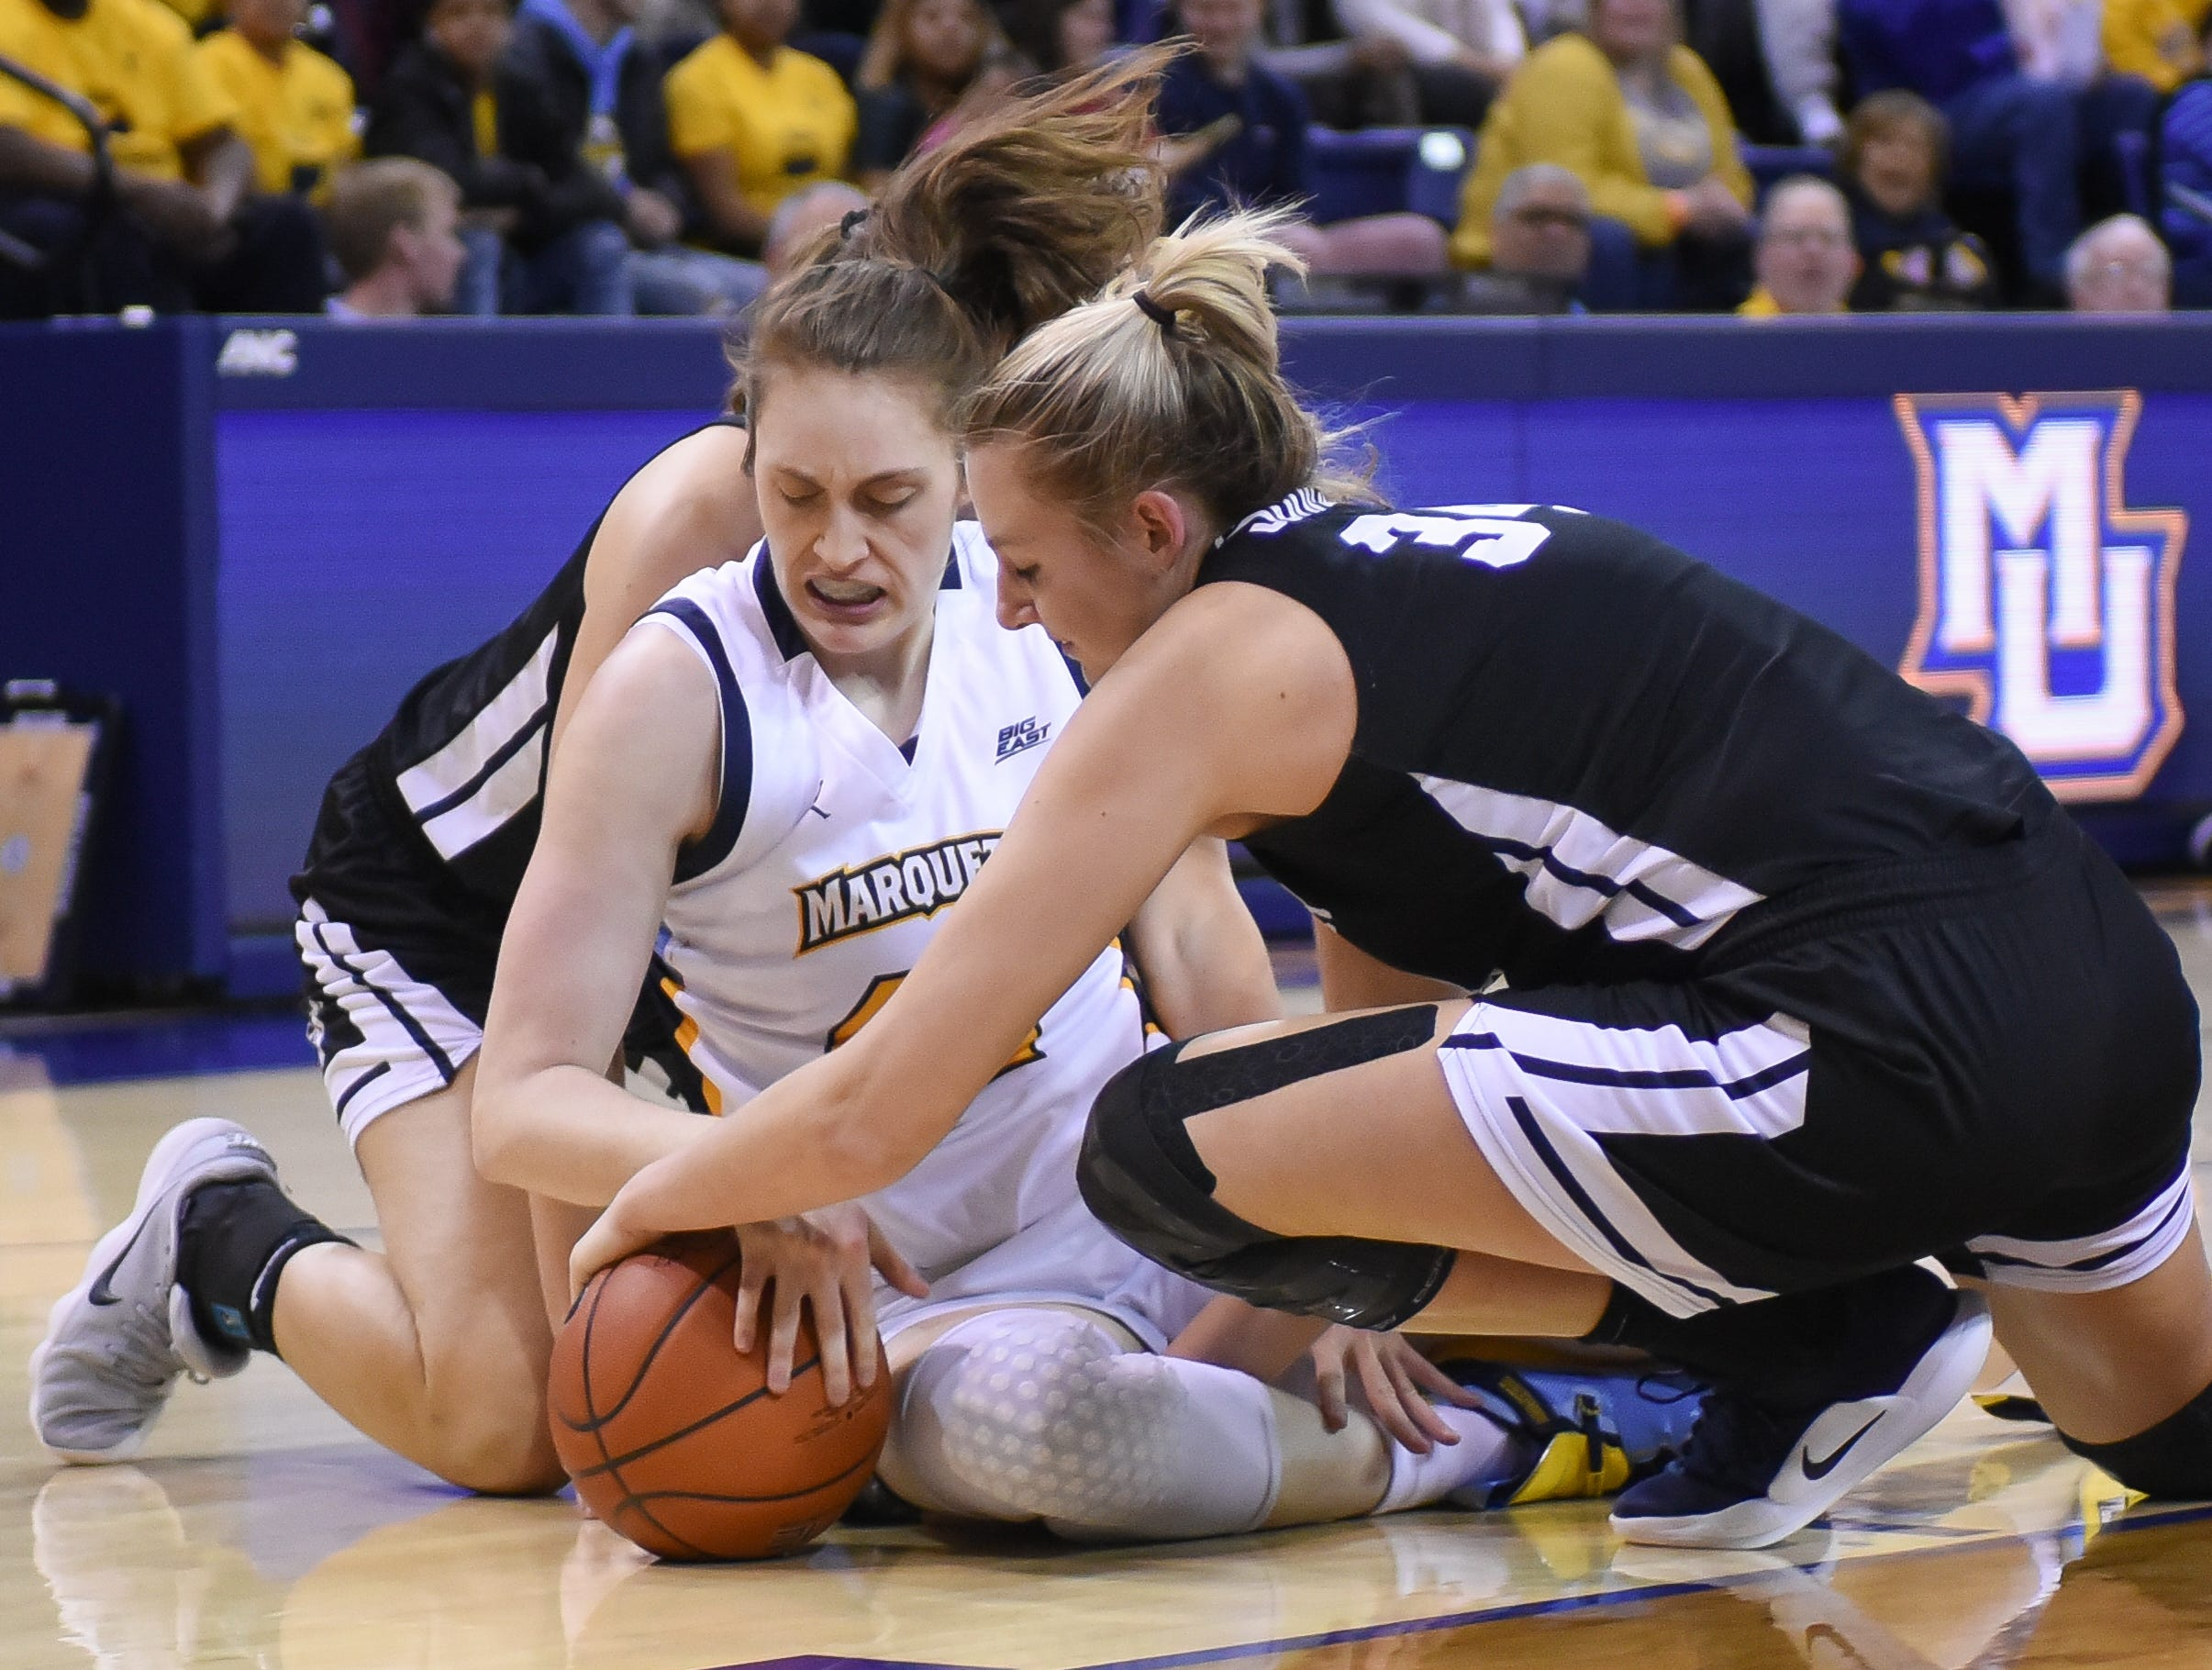 Marquette guard Lauren Van Kleunen wrestles with Butler forward/center Tori Schickel for a loose ball  in a Big East women's college basketball game Friday, February 22, 2019, at the Al McGuire Center.